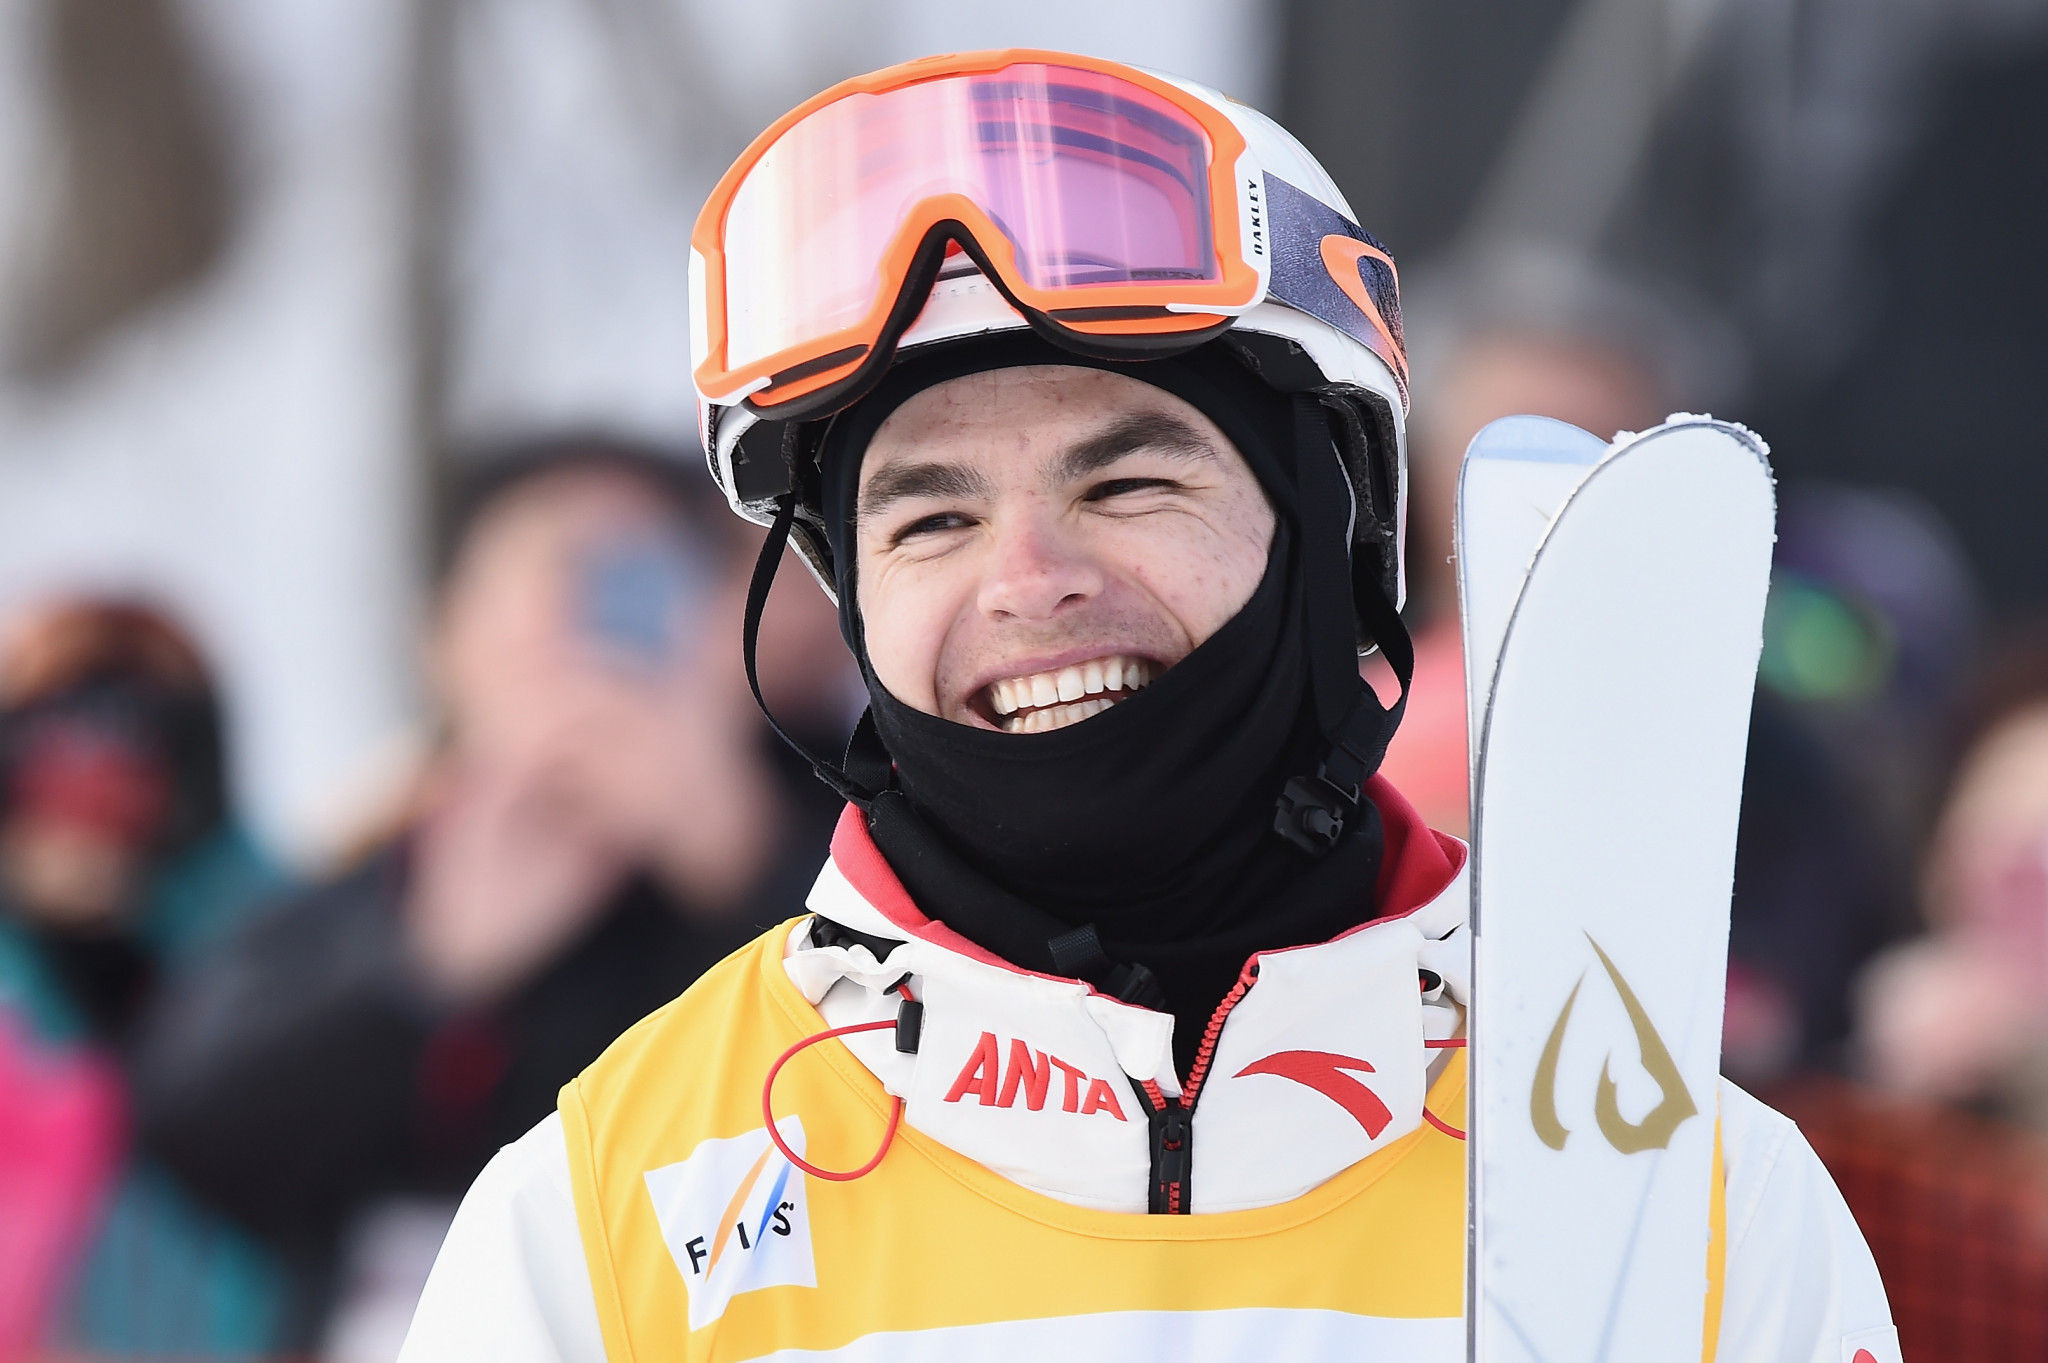 Mikaël Kingsbury of Canada tops the World Cup standings ©Getty Images